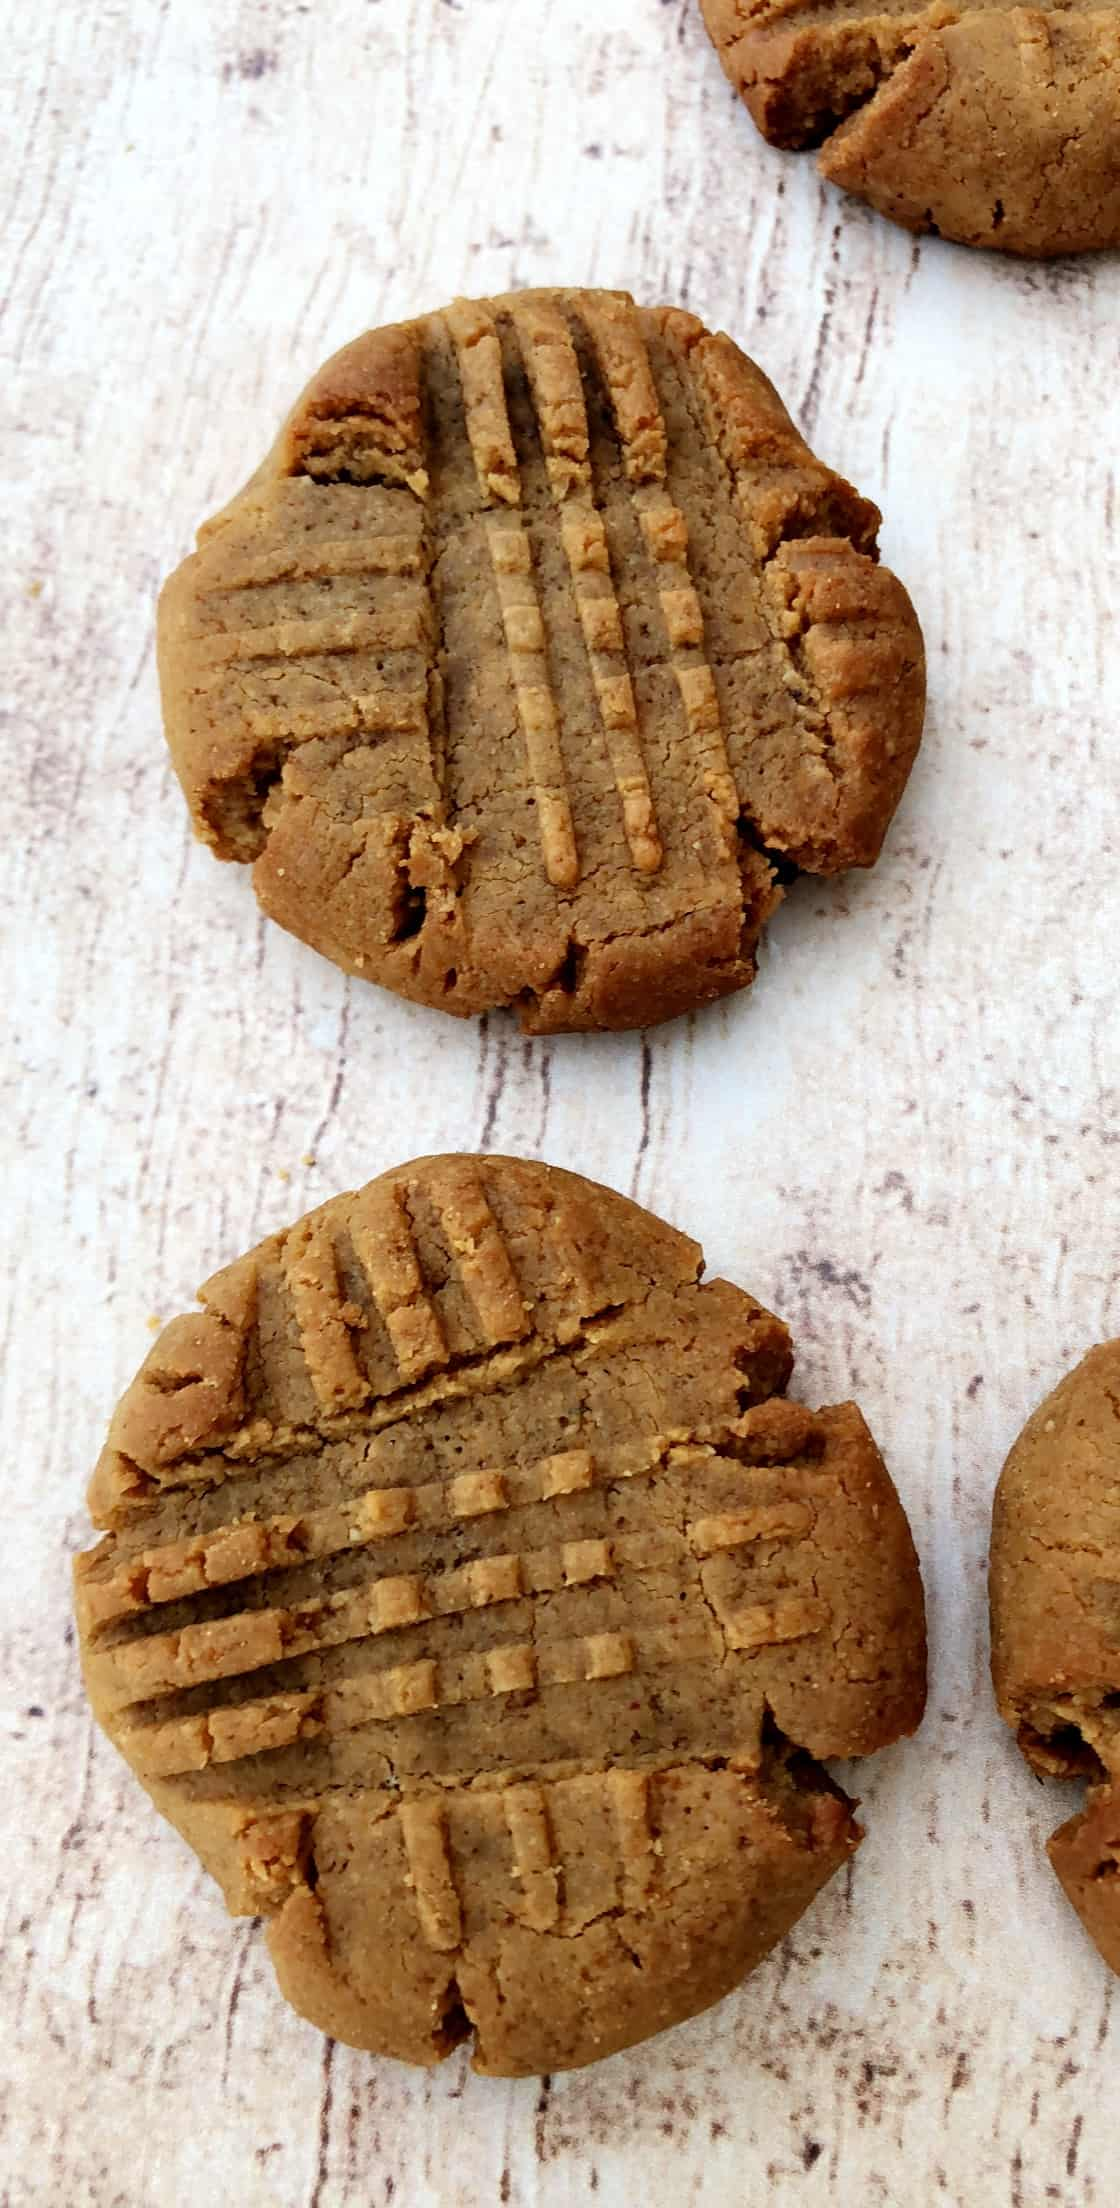 2 keto peanut butter cookies on a flat surface